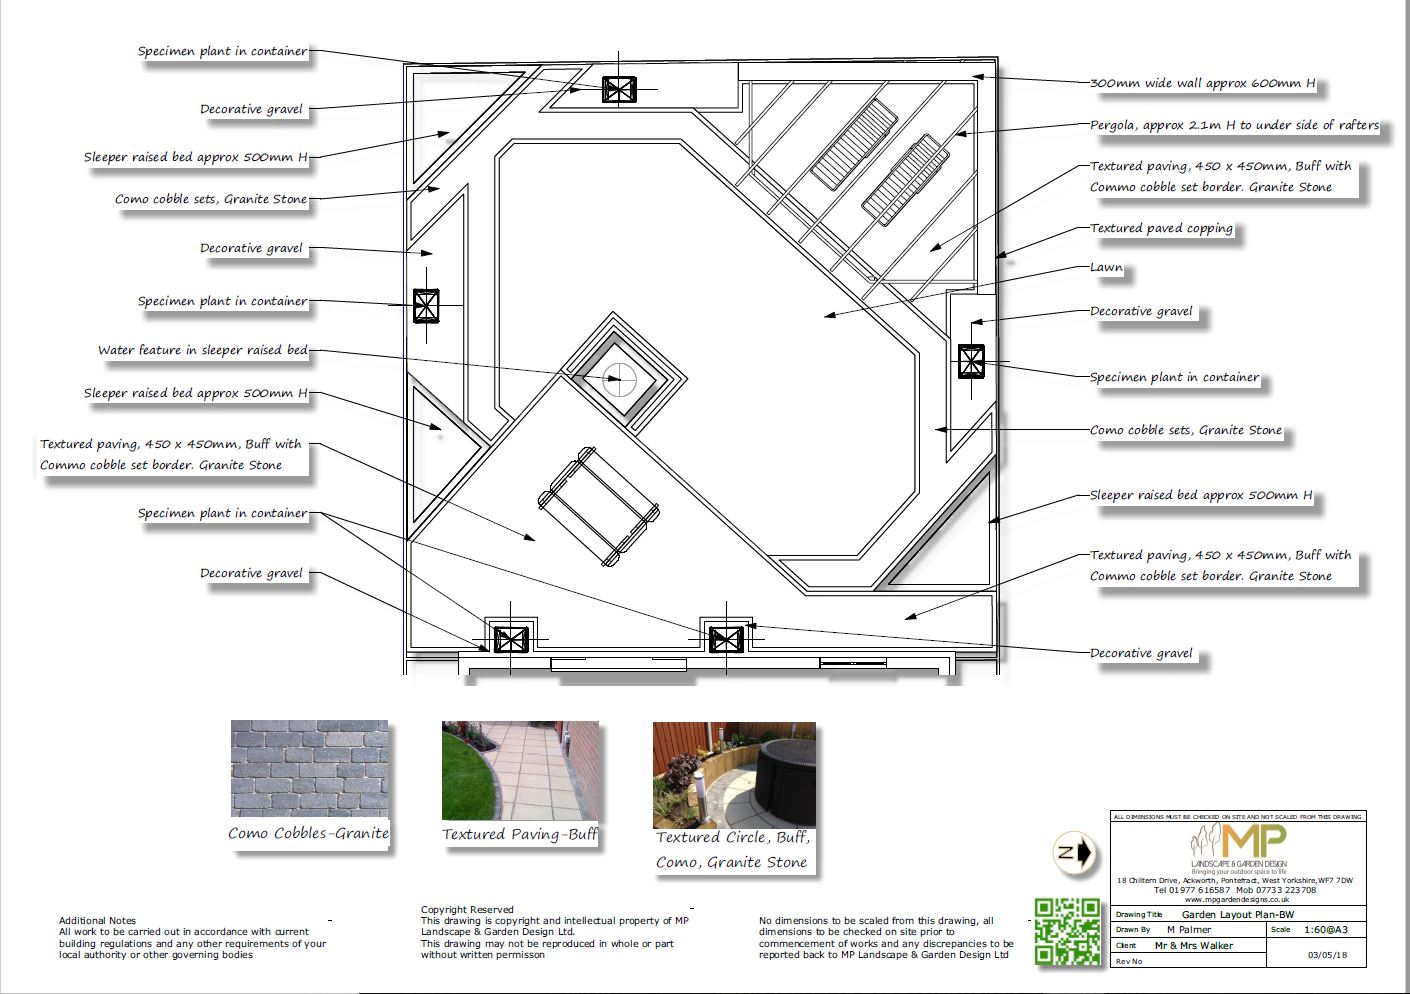 Garden layout black and white plans for a rear garden in Notton